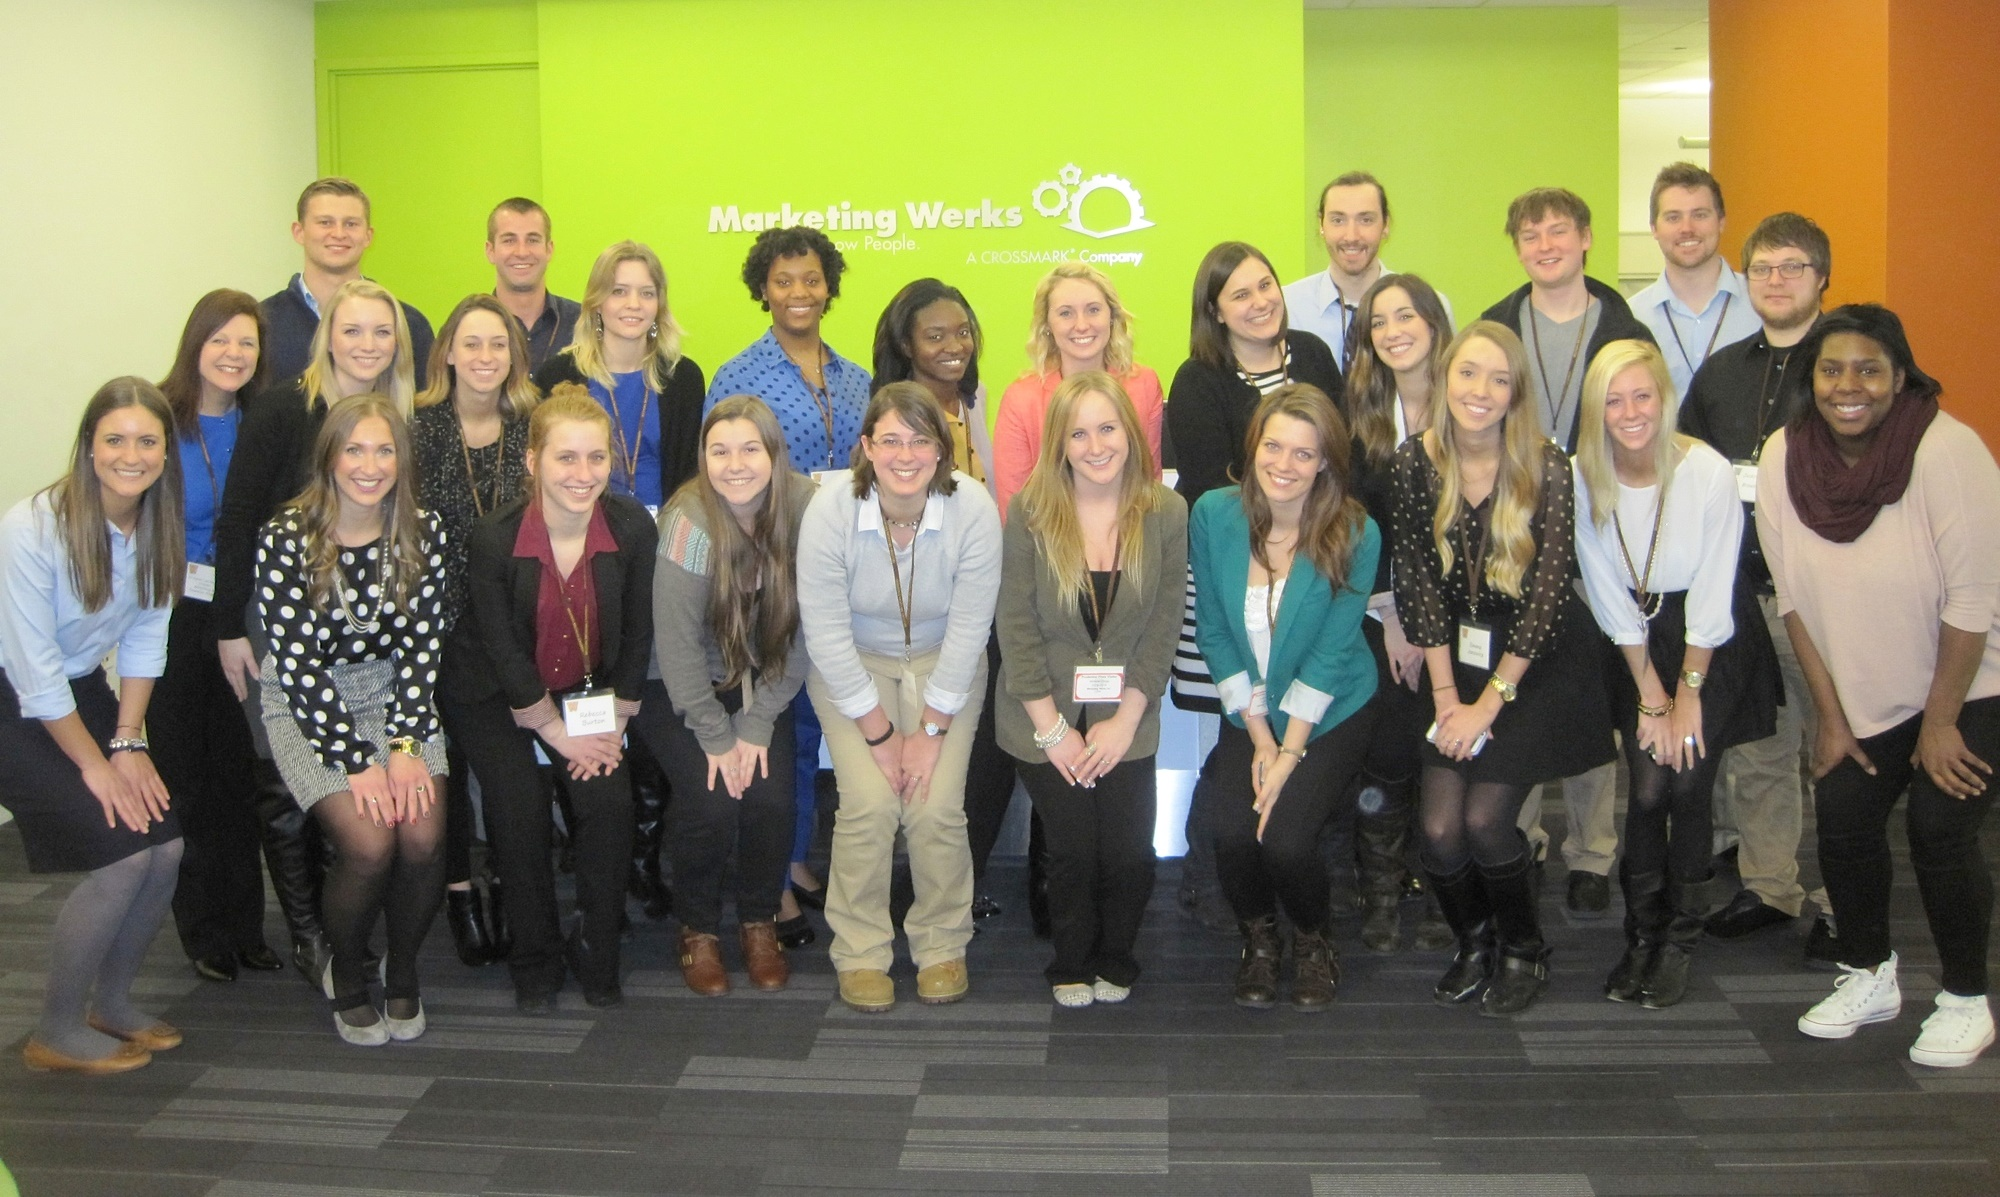 Marketing Werks with students, alumni, and Dr. L